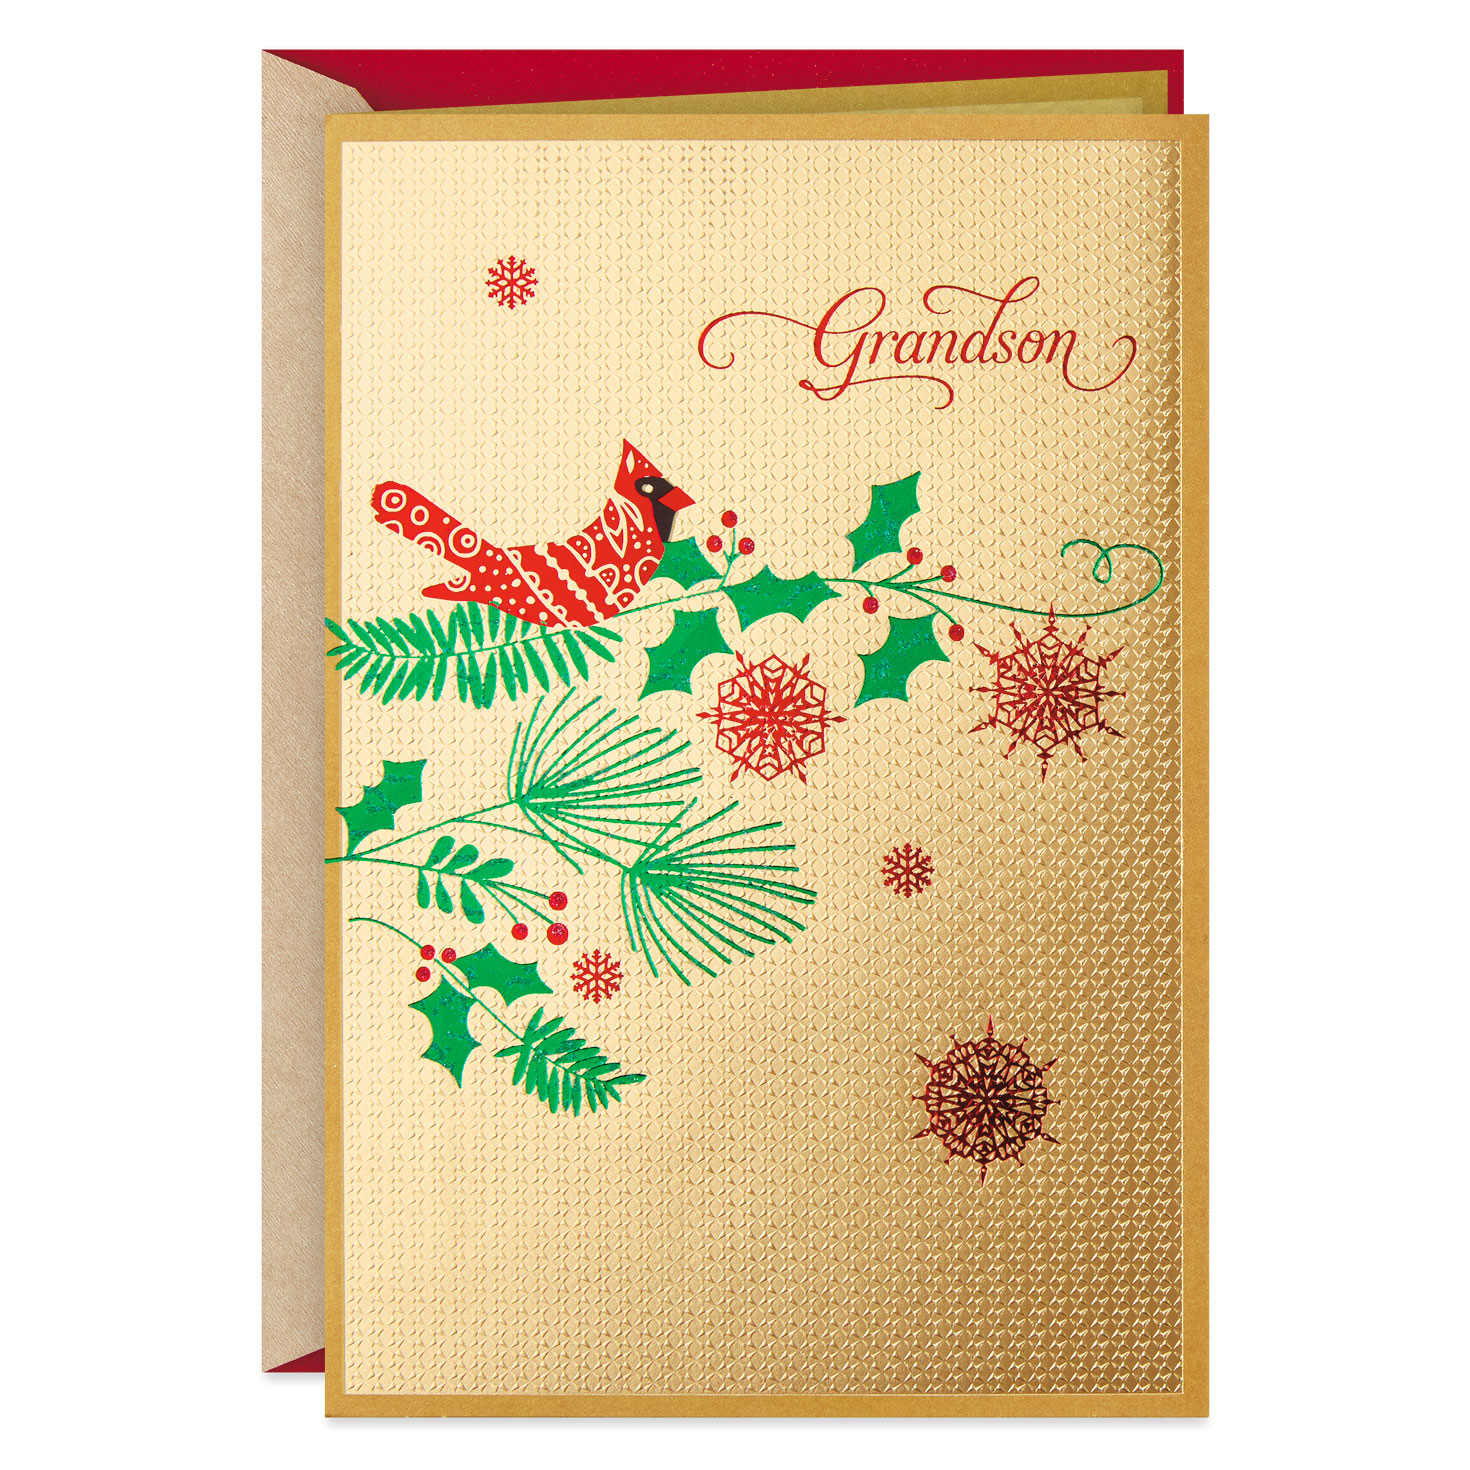 So Proud Of You Grandson Christmas Card